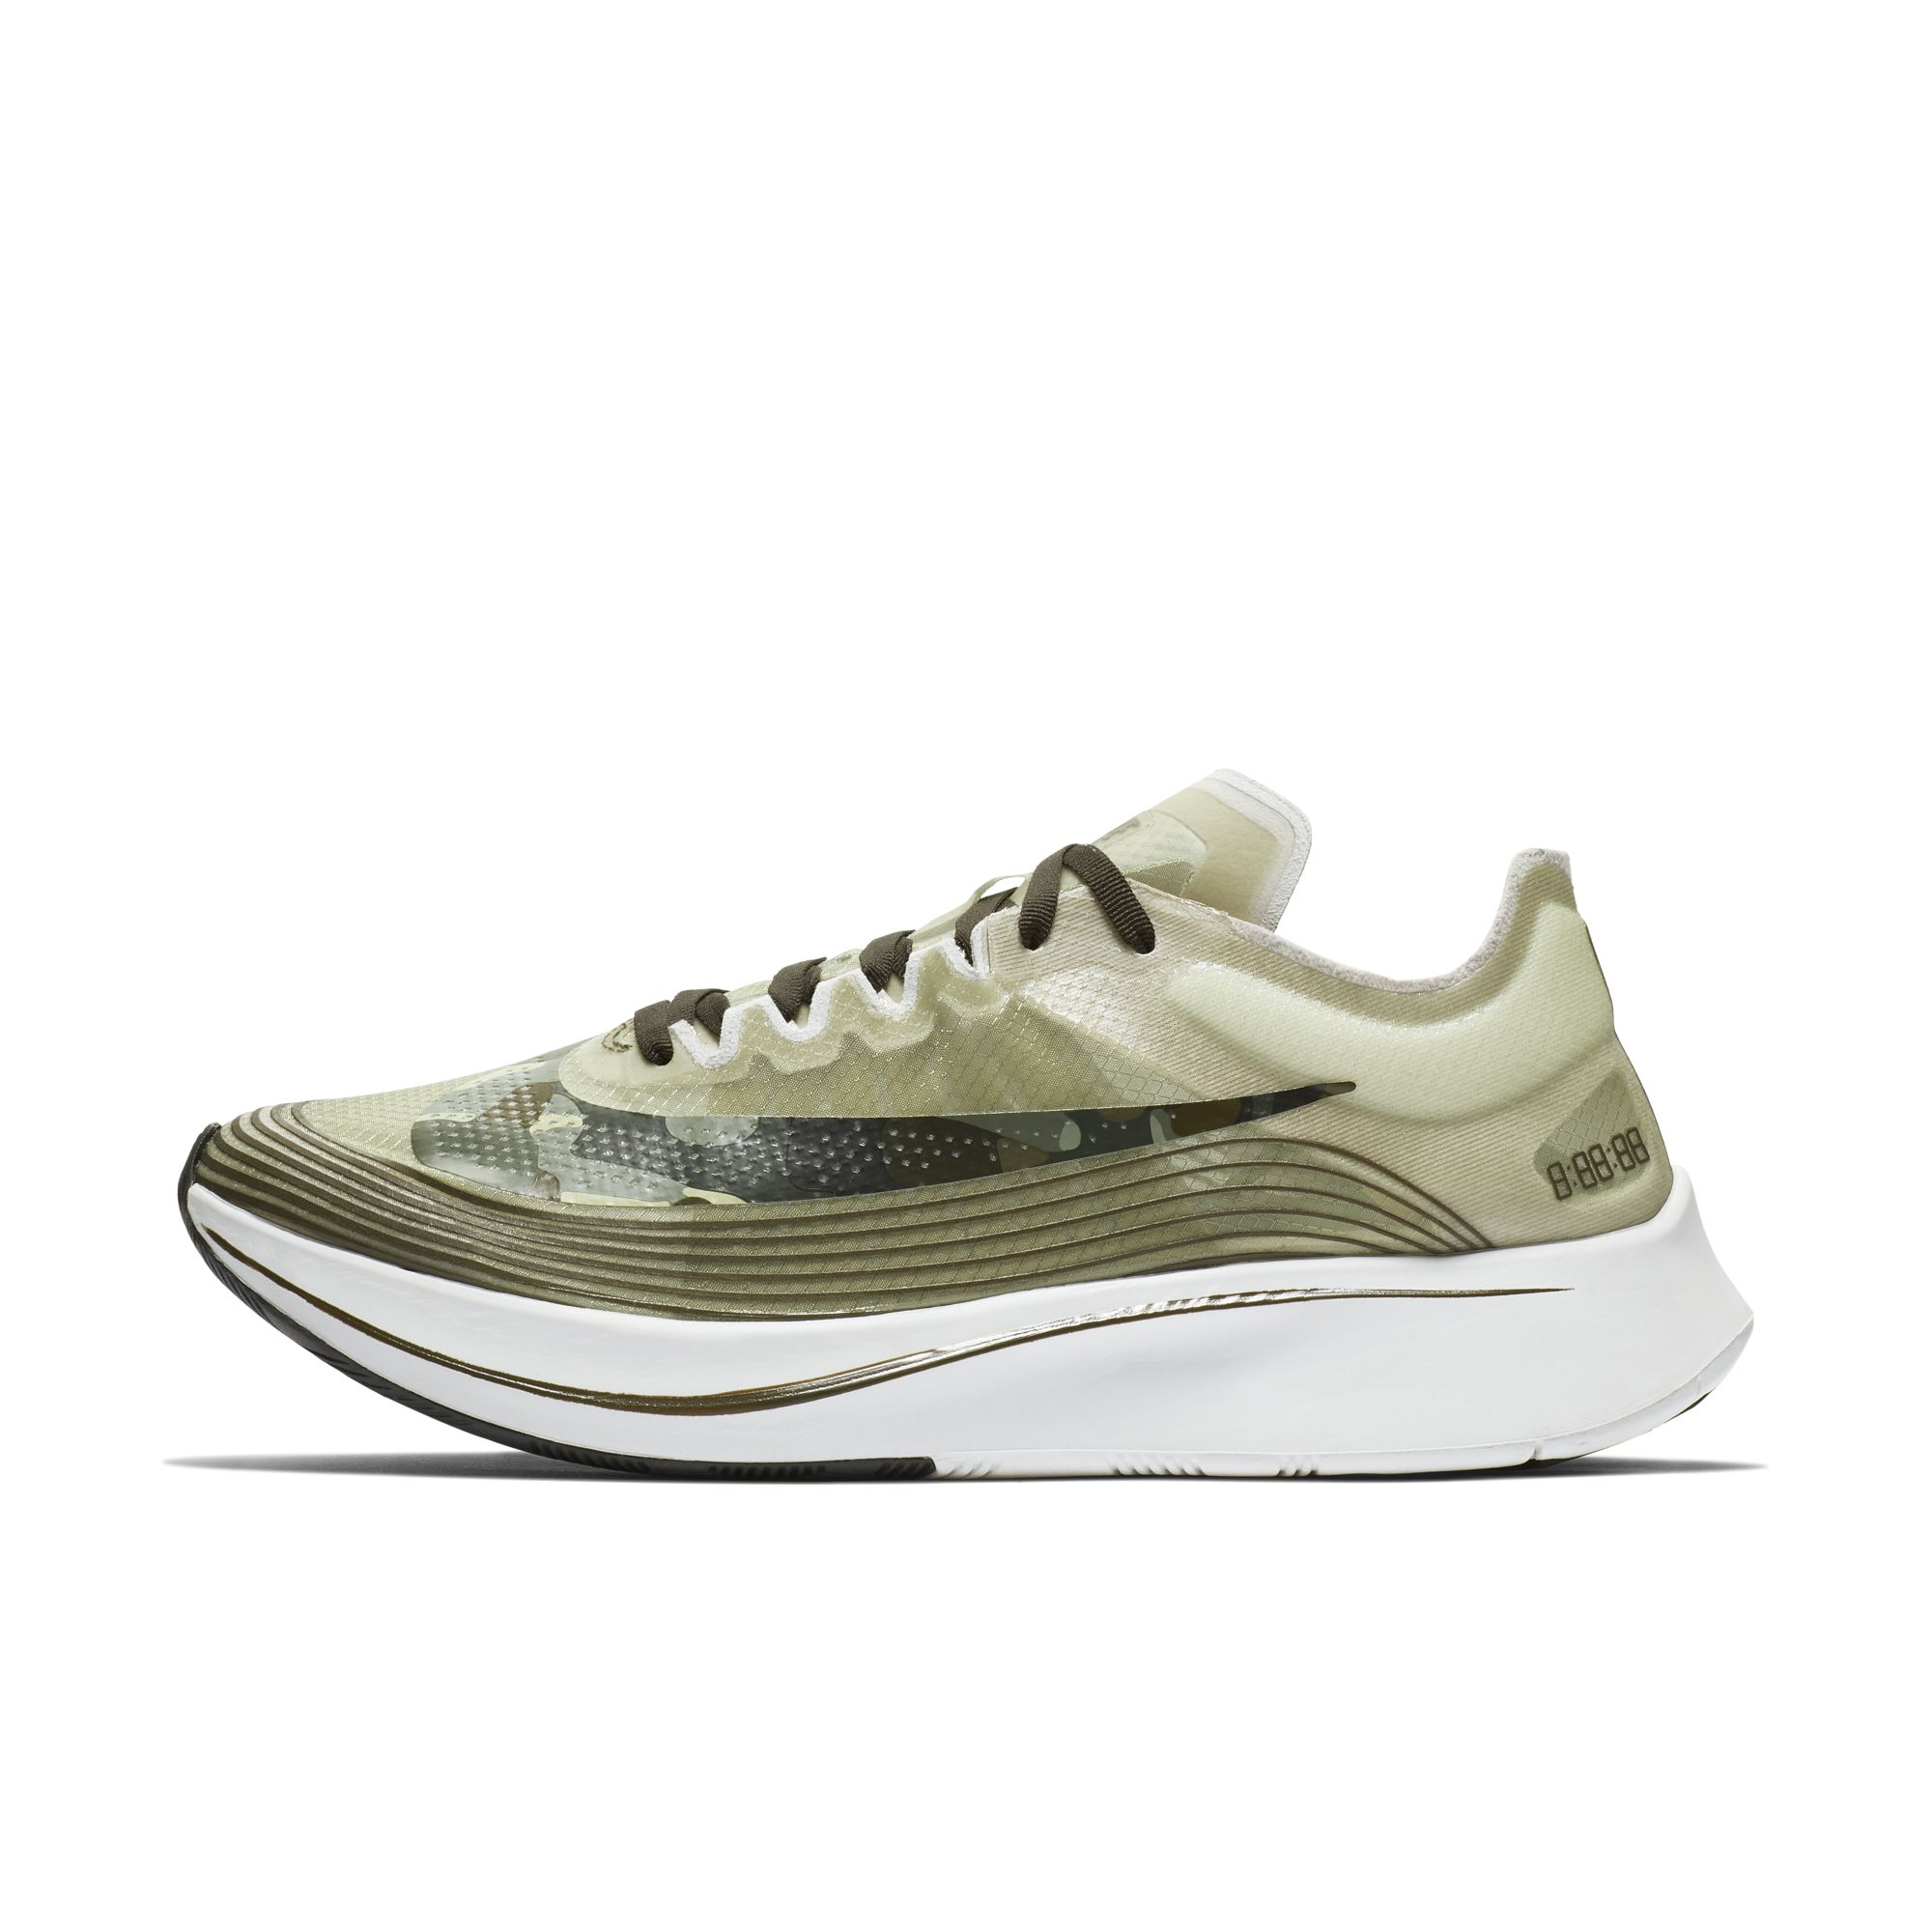 nike zoom fly sp review